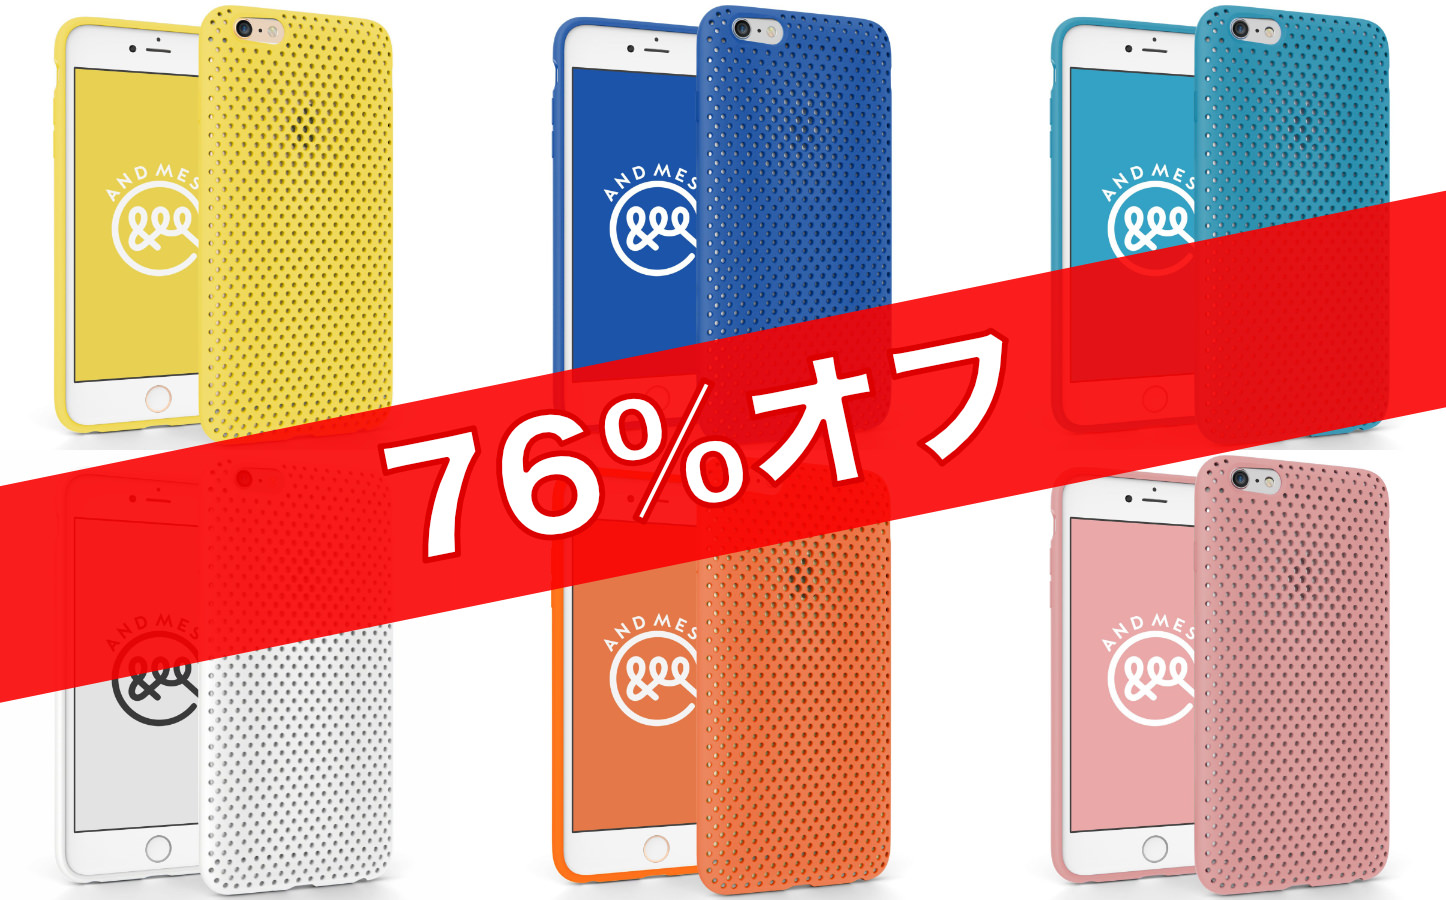 andmesh-mesh-case-for-iphon6plus-76percent-off